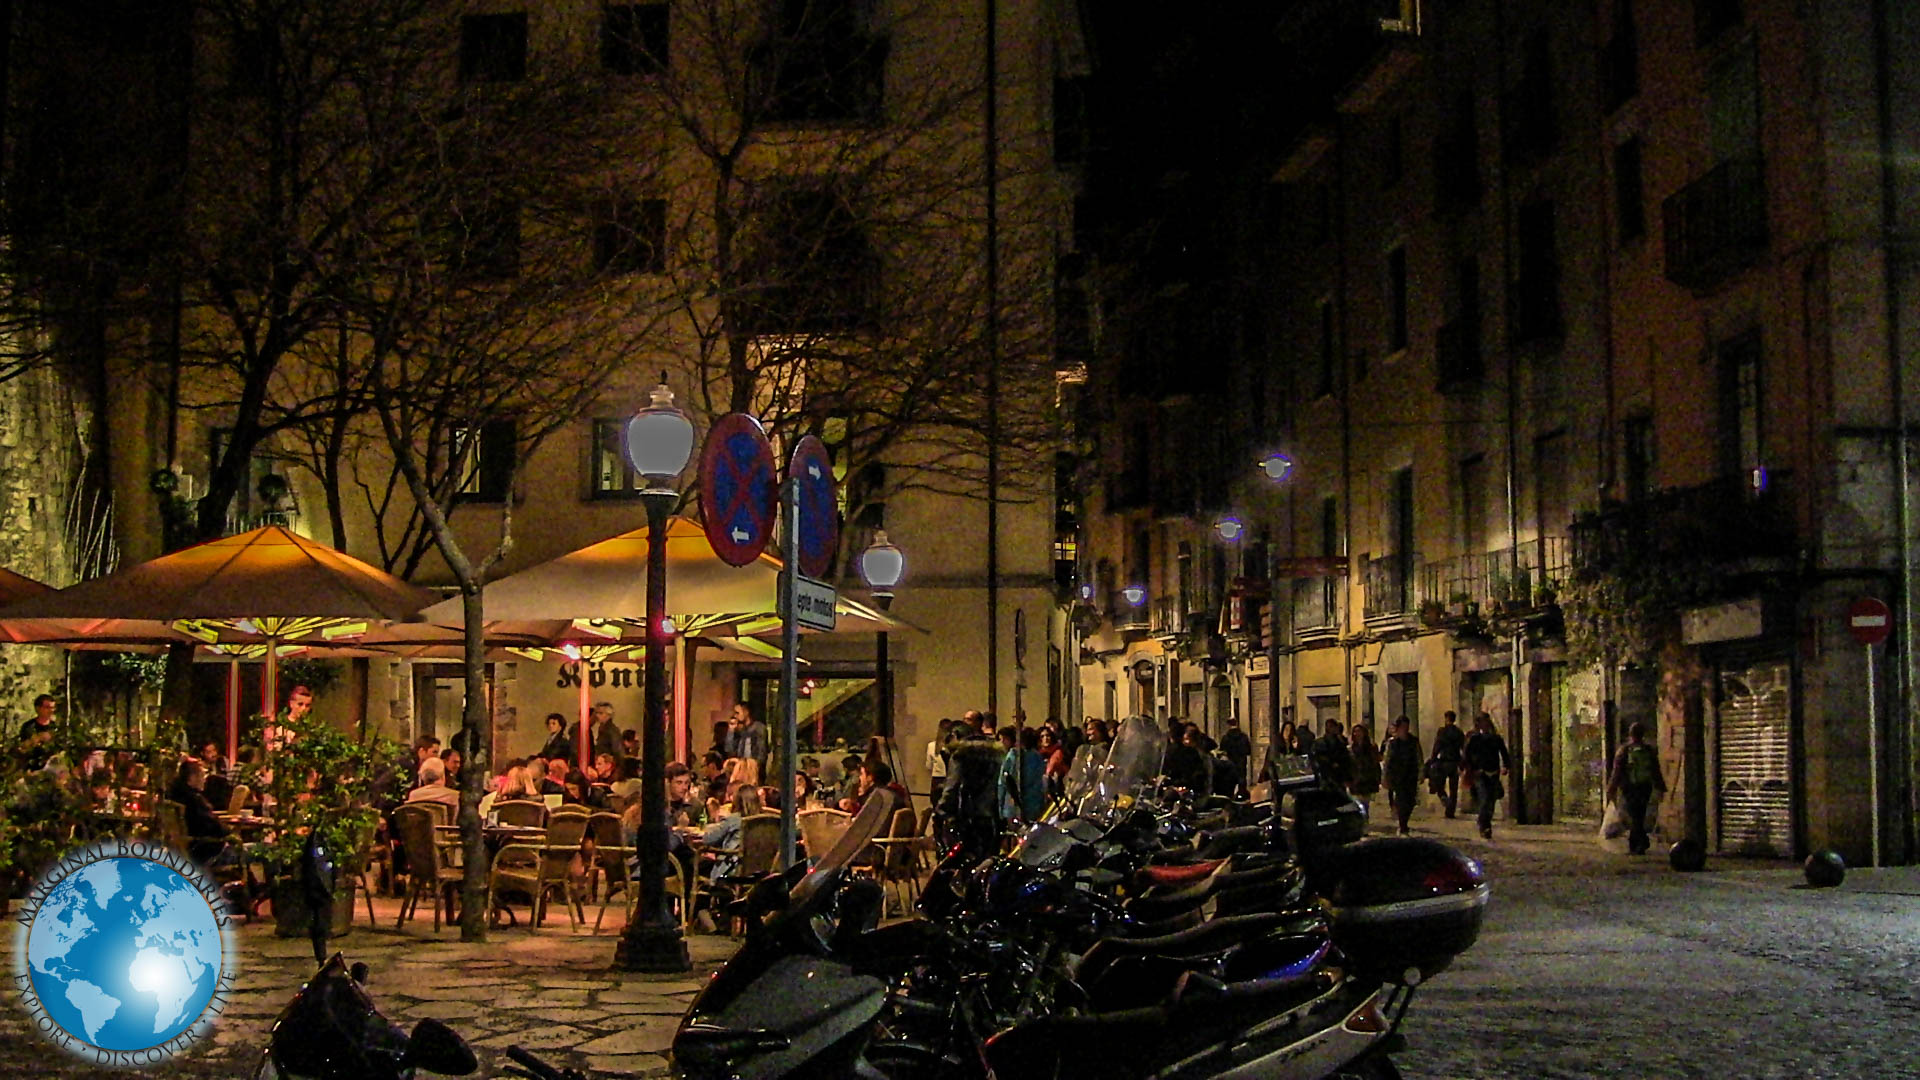 The streets of Girona at night